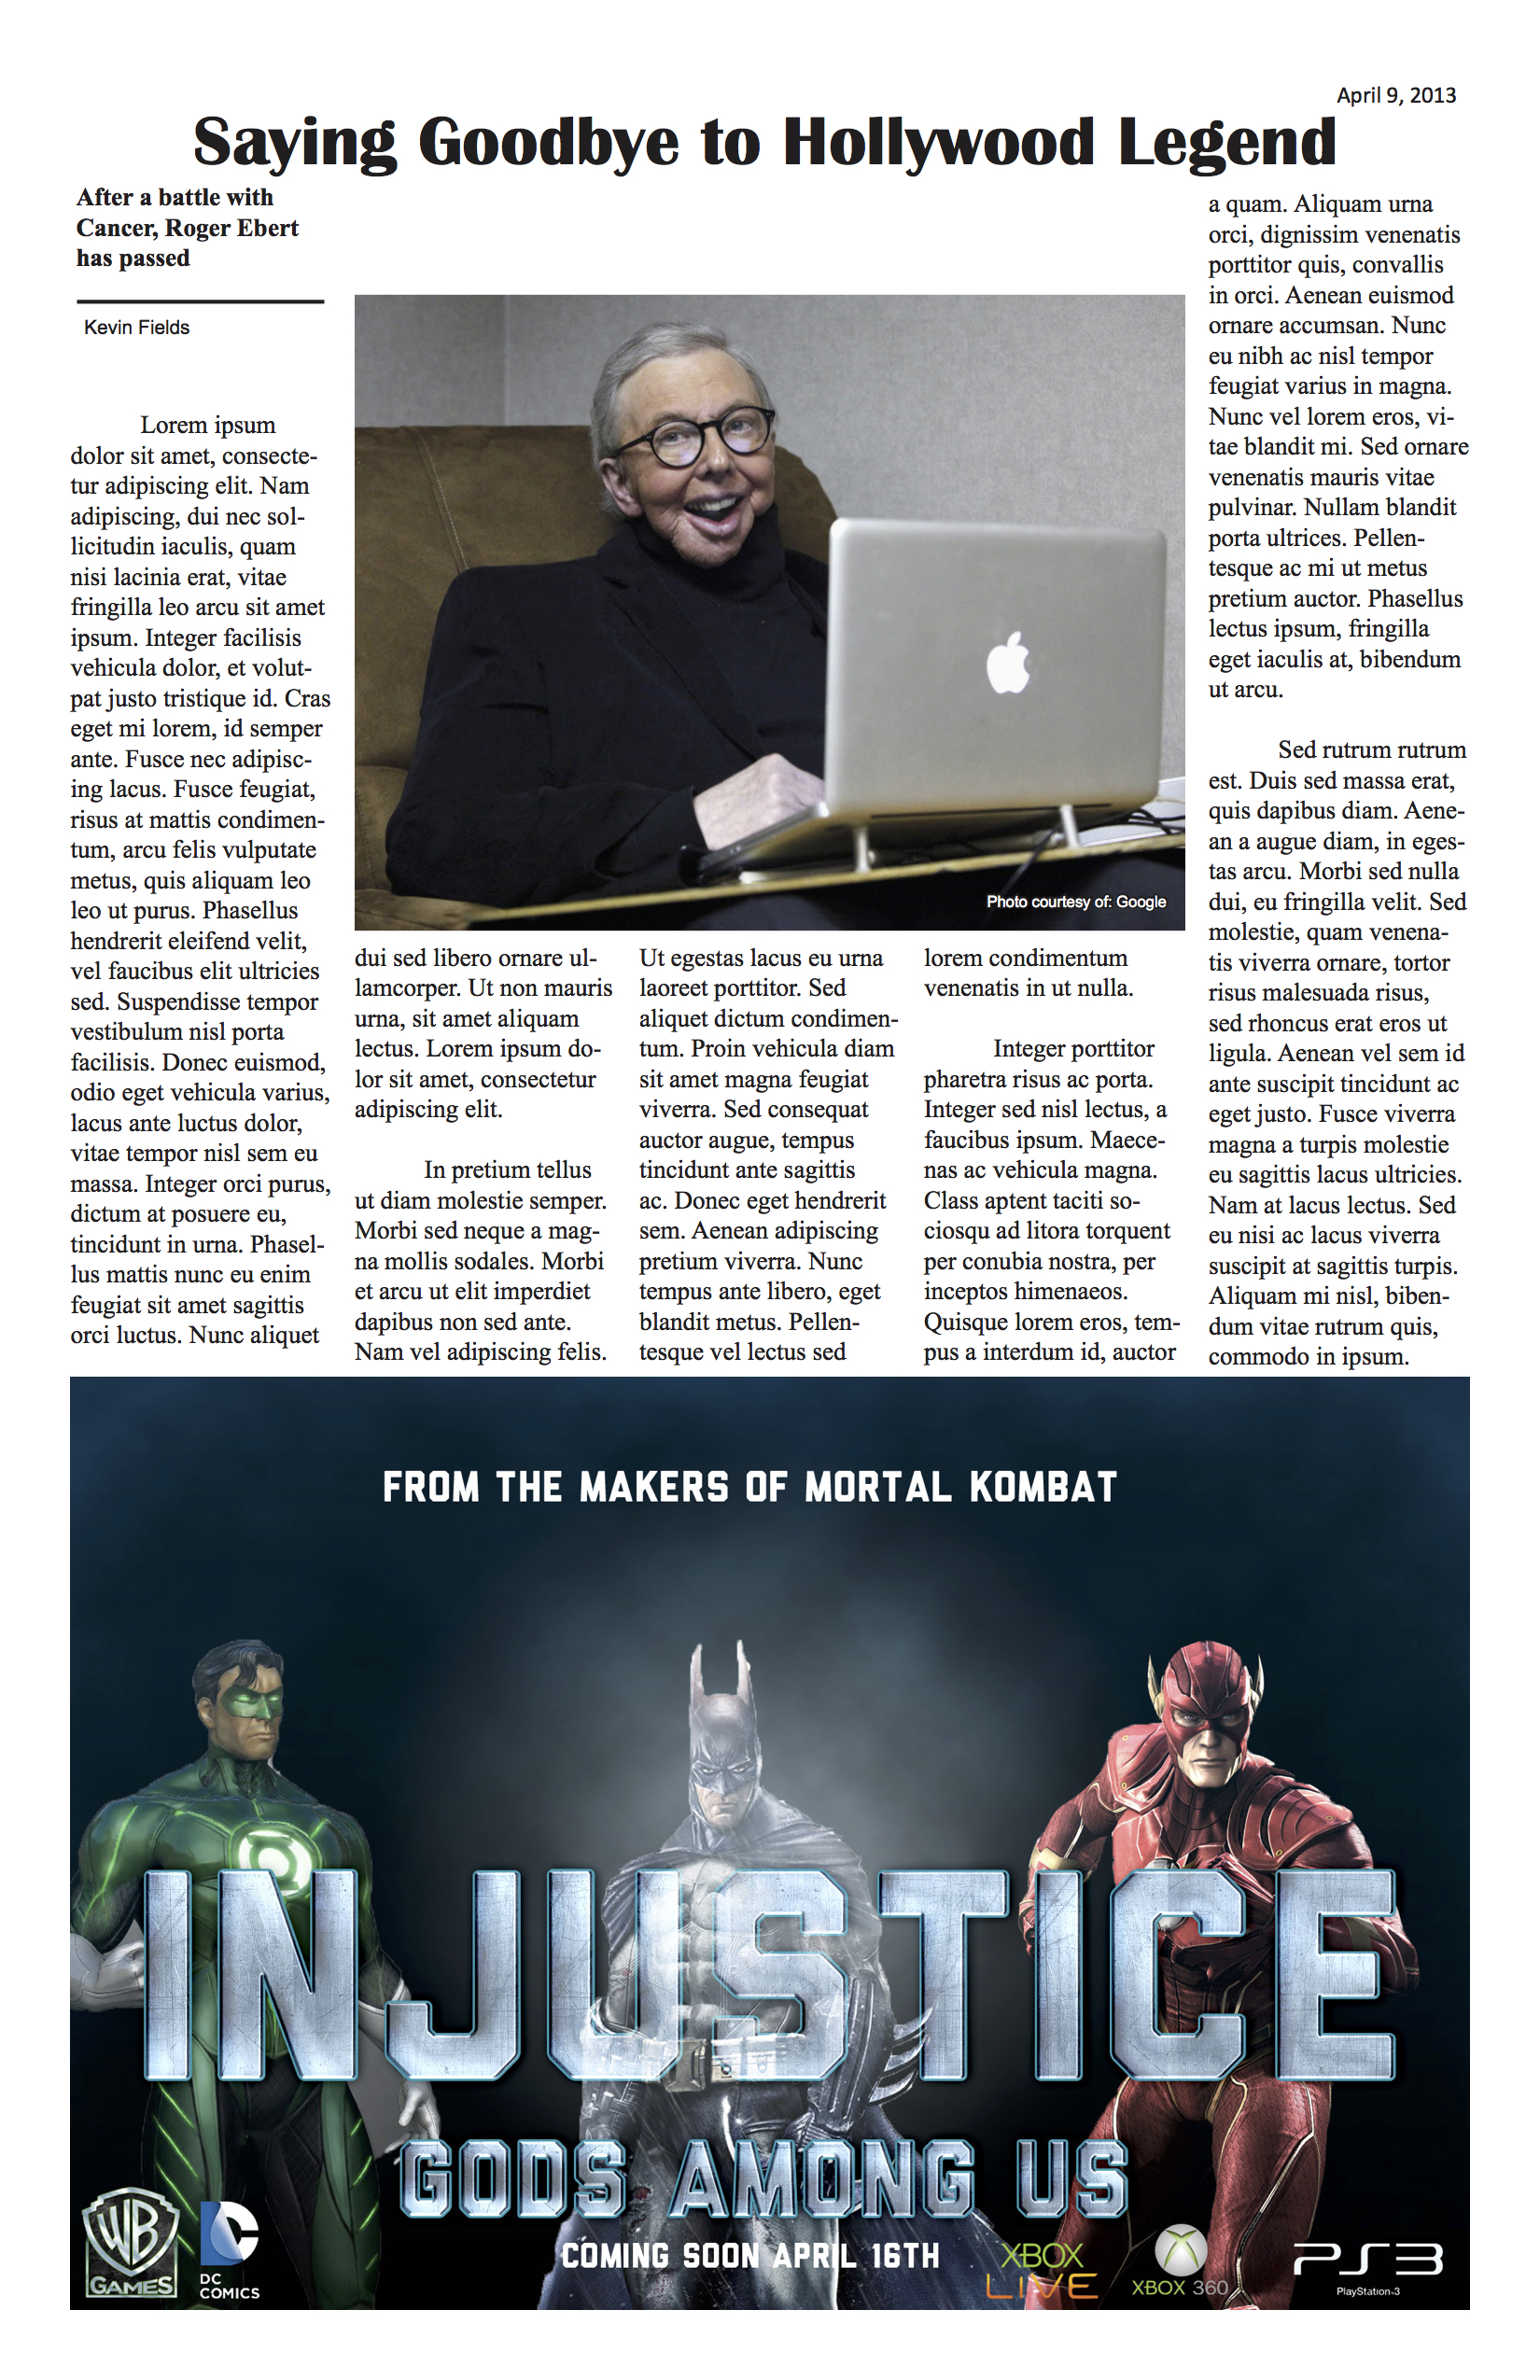 A mock newspaper article from the Entertainment section, this design was created using inDesign and the bottom was created using Photoshop.